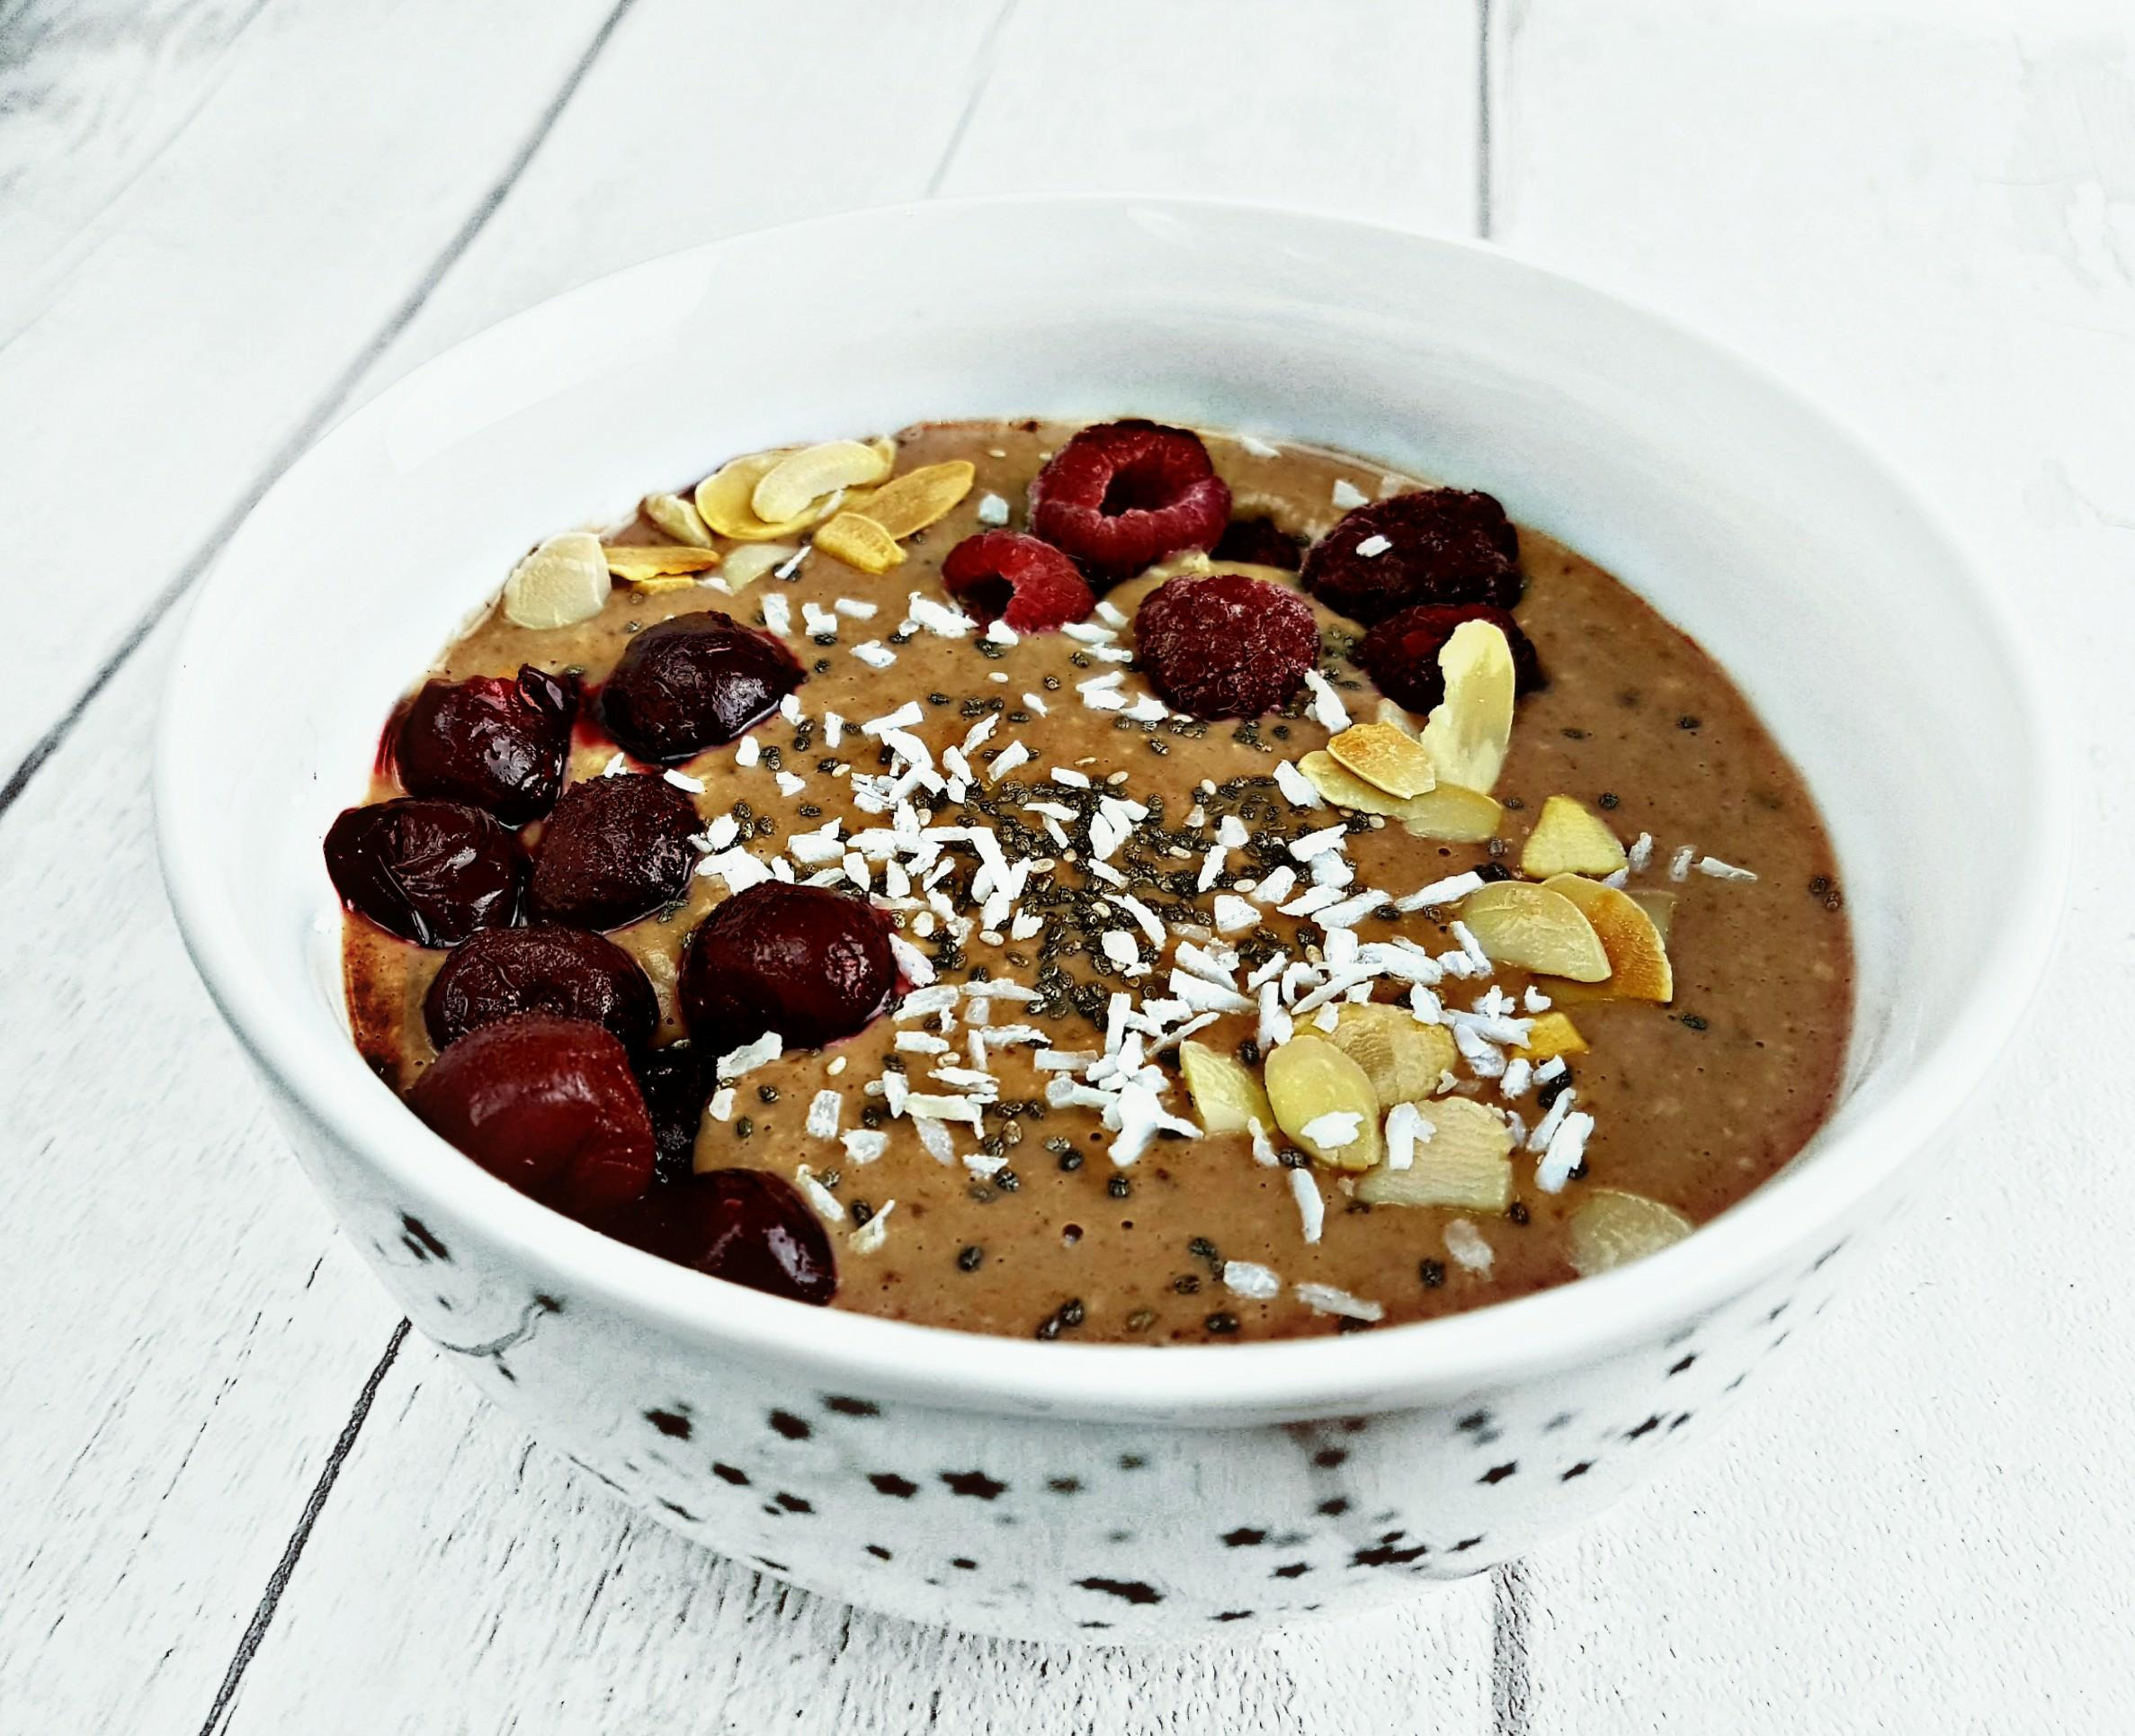 Chocolate Oat Pudding - Fit Food Brunette